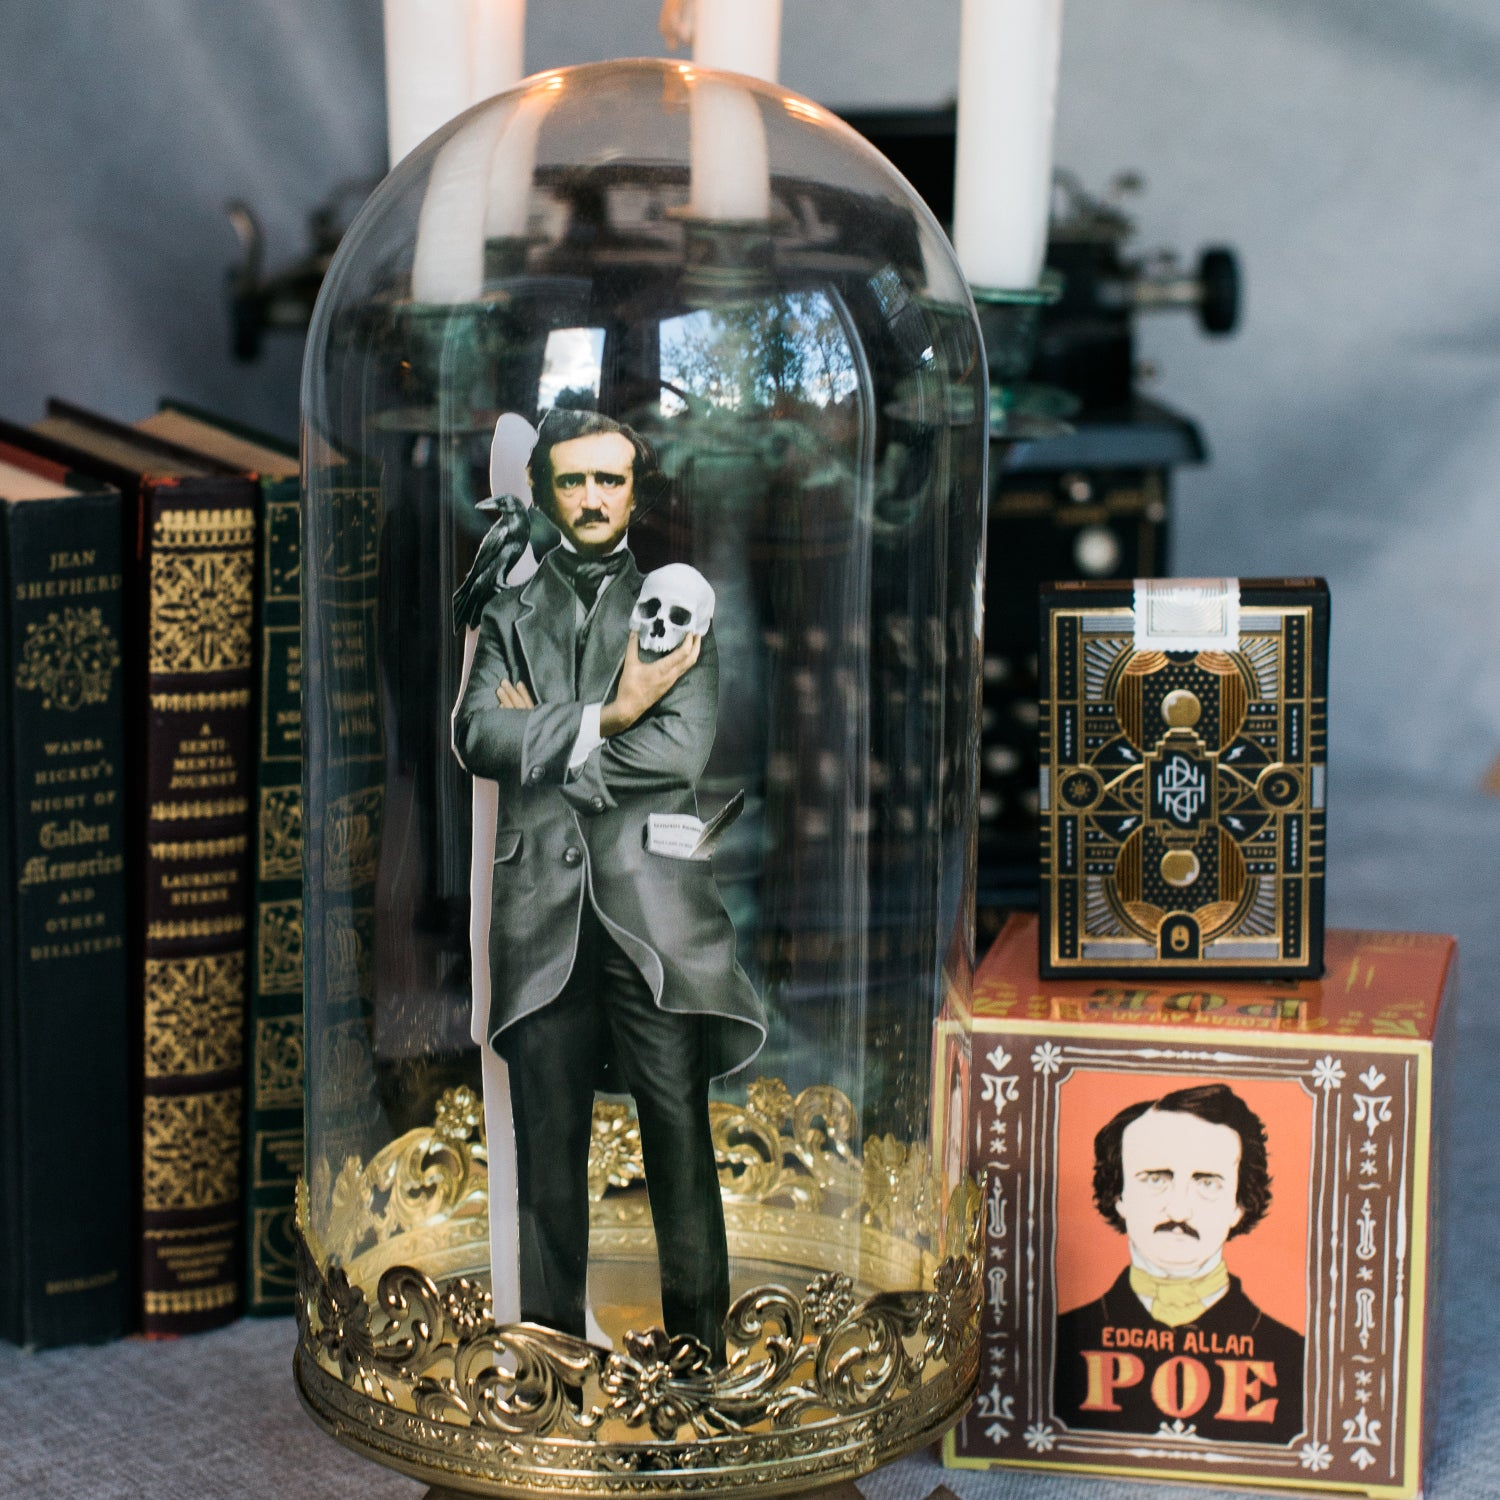 Edgar Allan Poe Nevermore Gift Box Unique Gift For Book Lover My Weekend is Booked